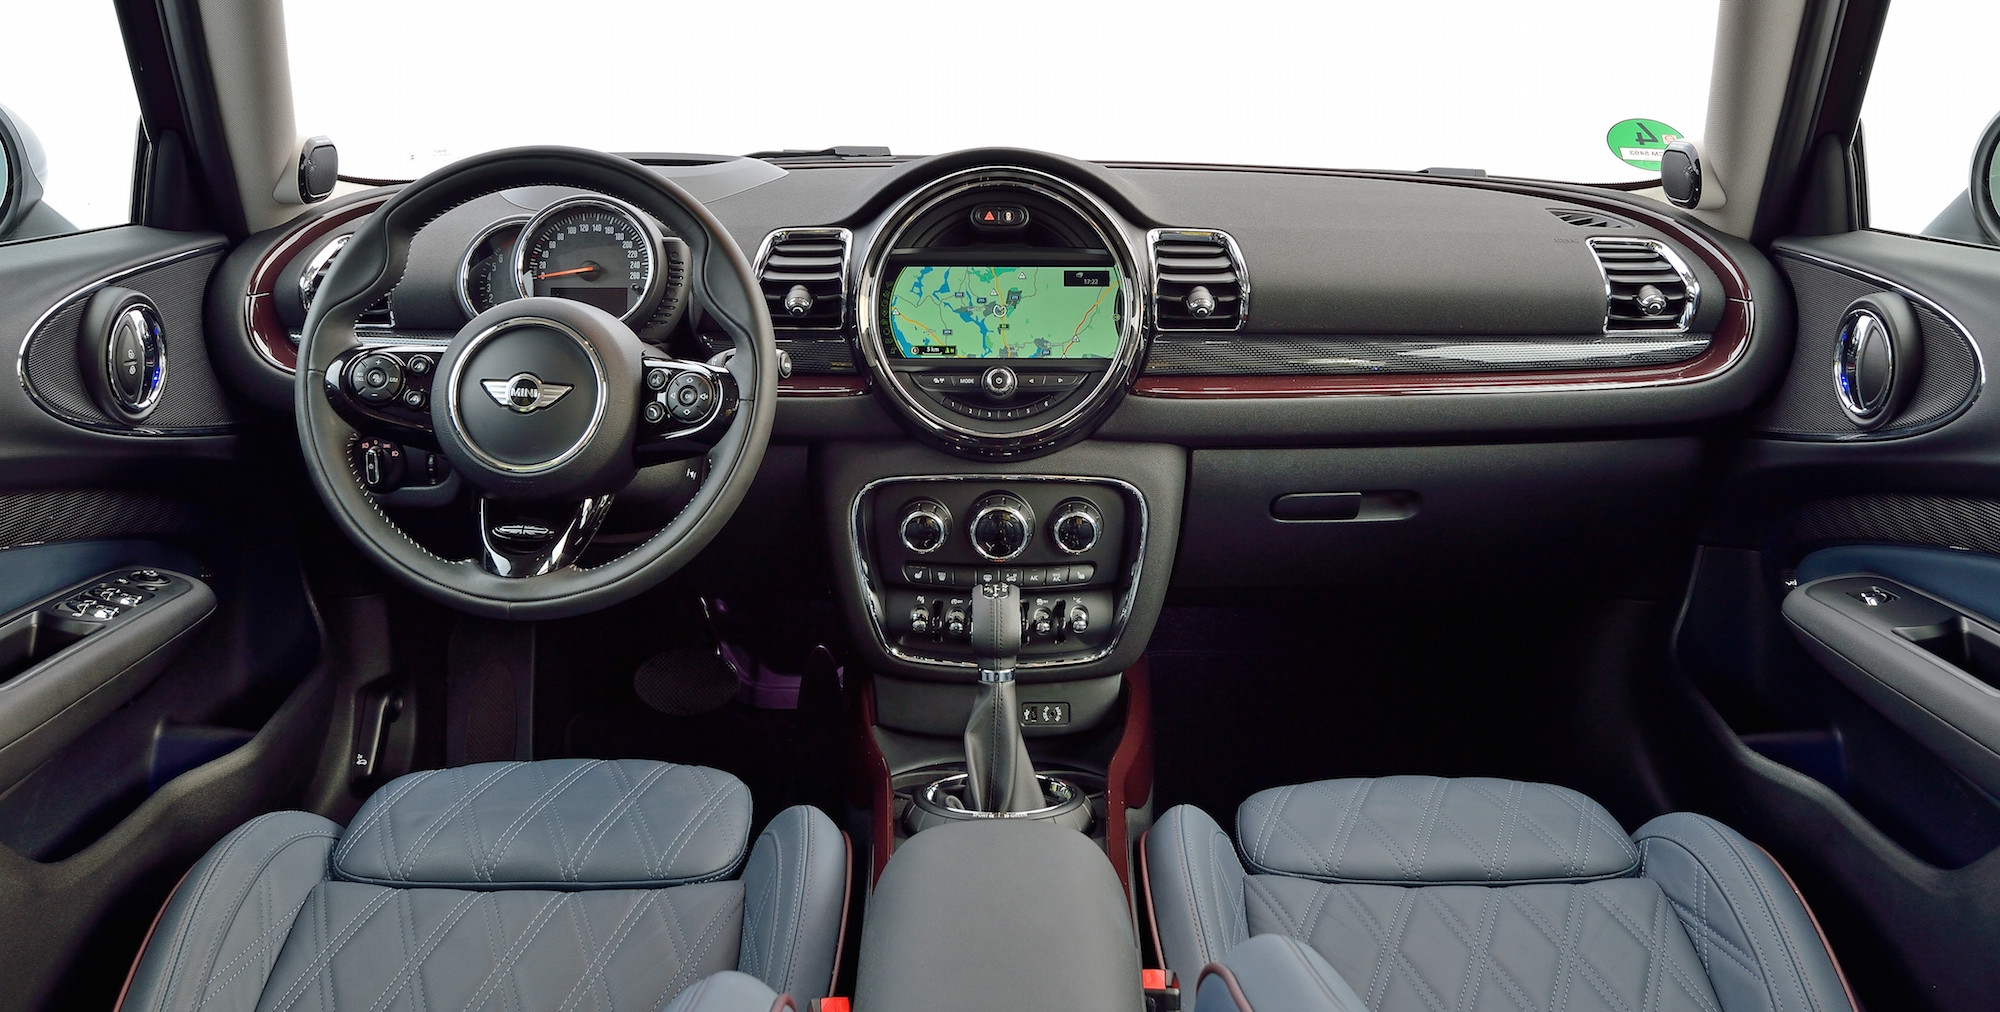 2016 Mini Cooper S Clubman Dashboard Interior (View 12 of 17)